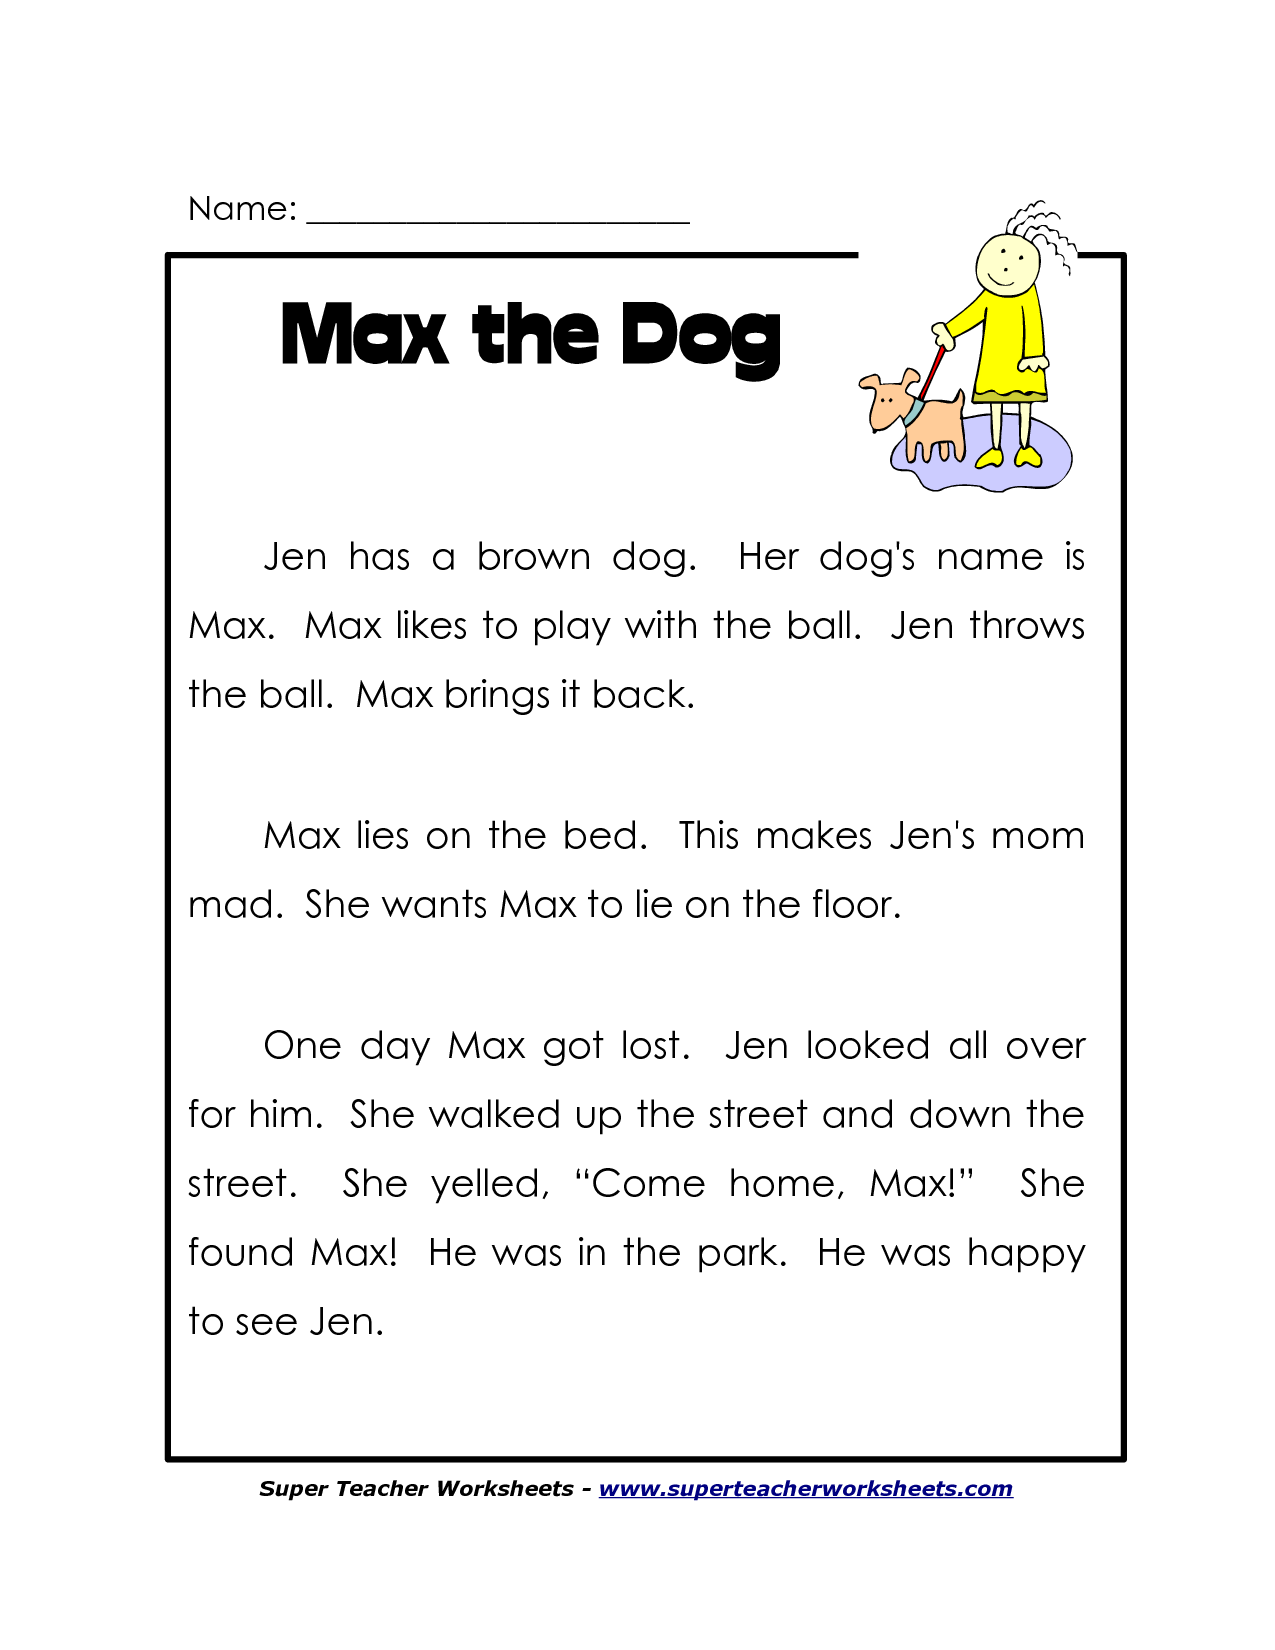 Worksheets Reading Printable Worksheets 1st grade reading printable worksheets pichaglobal comprehension and children on pinterest